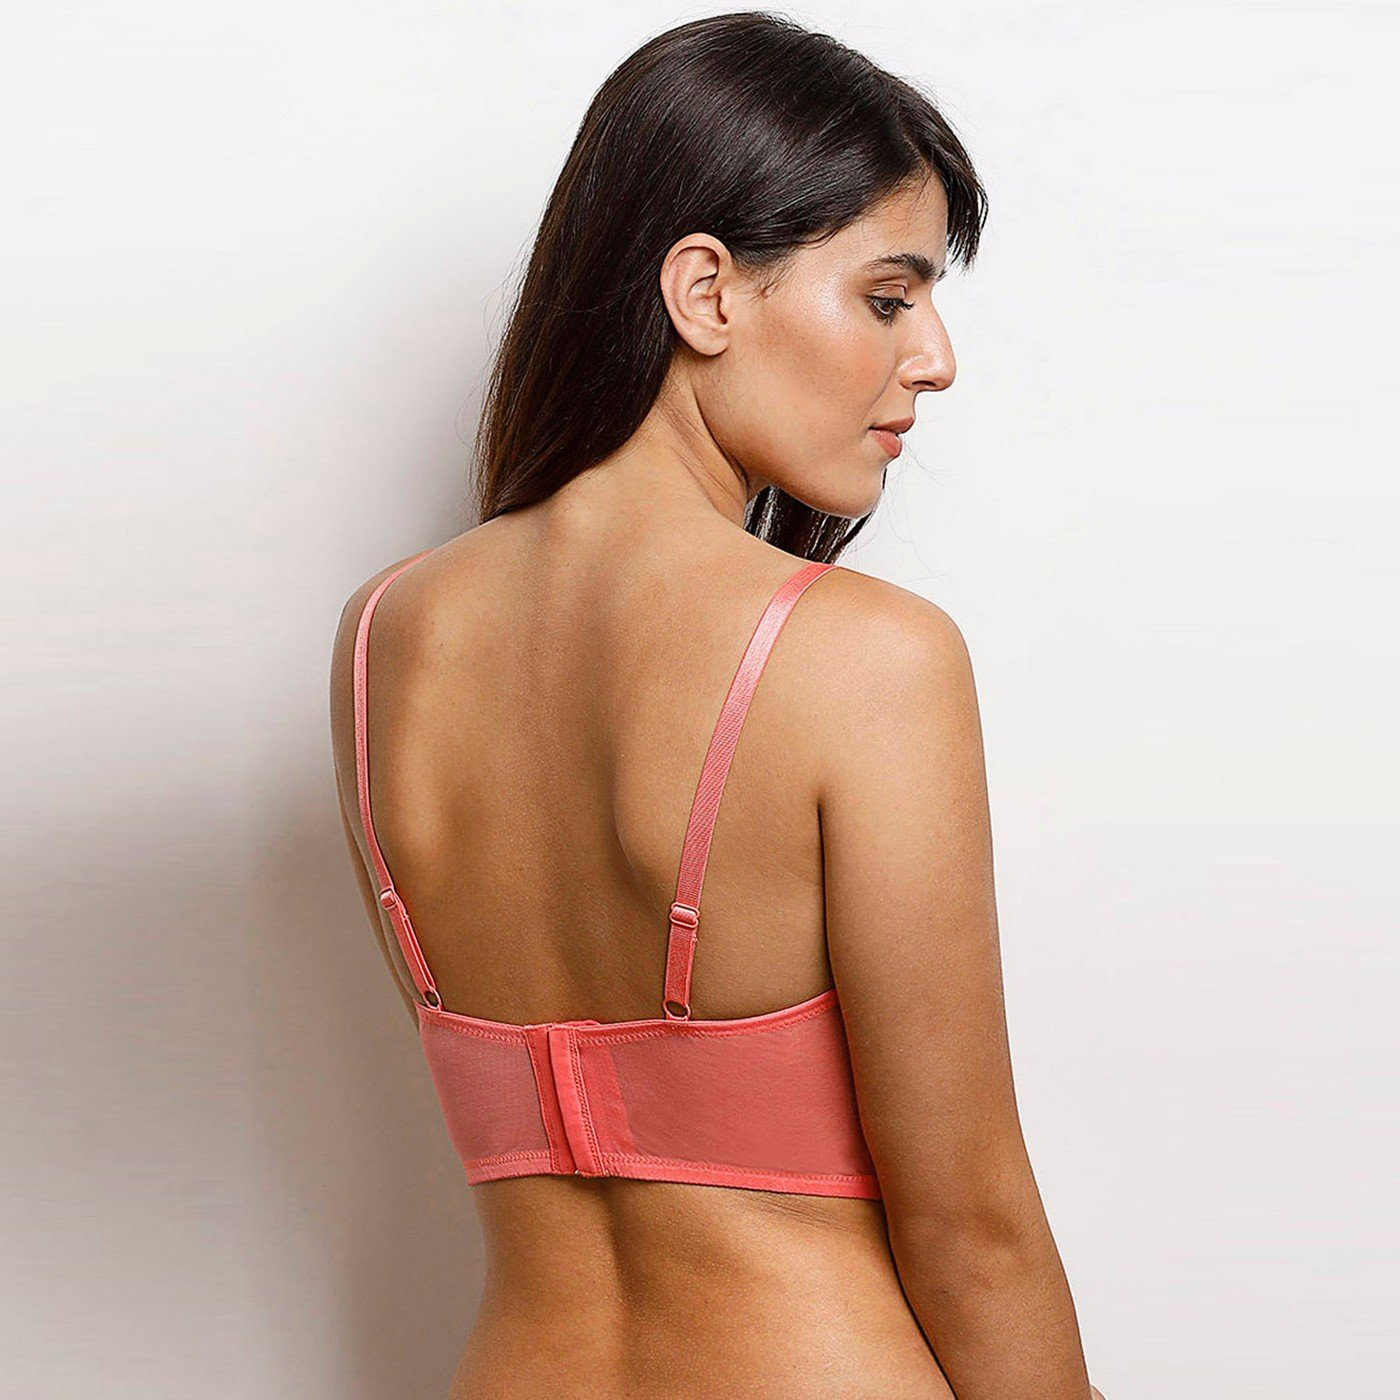 Zivame Moroccan Lace Underwired Longline Bra- Coral  Amazon.in  Clothing    Accessories 144ecba4c